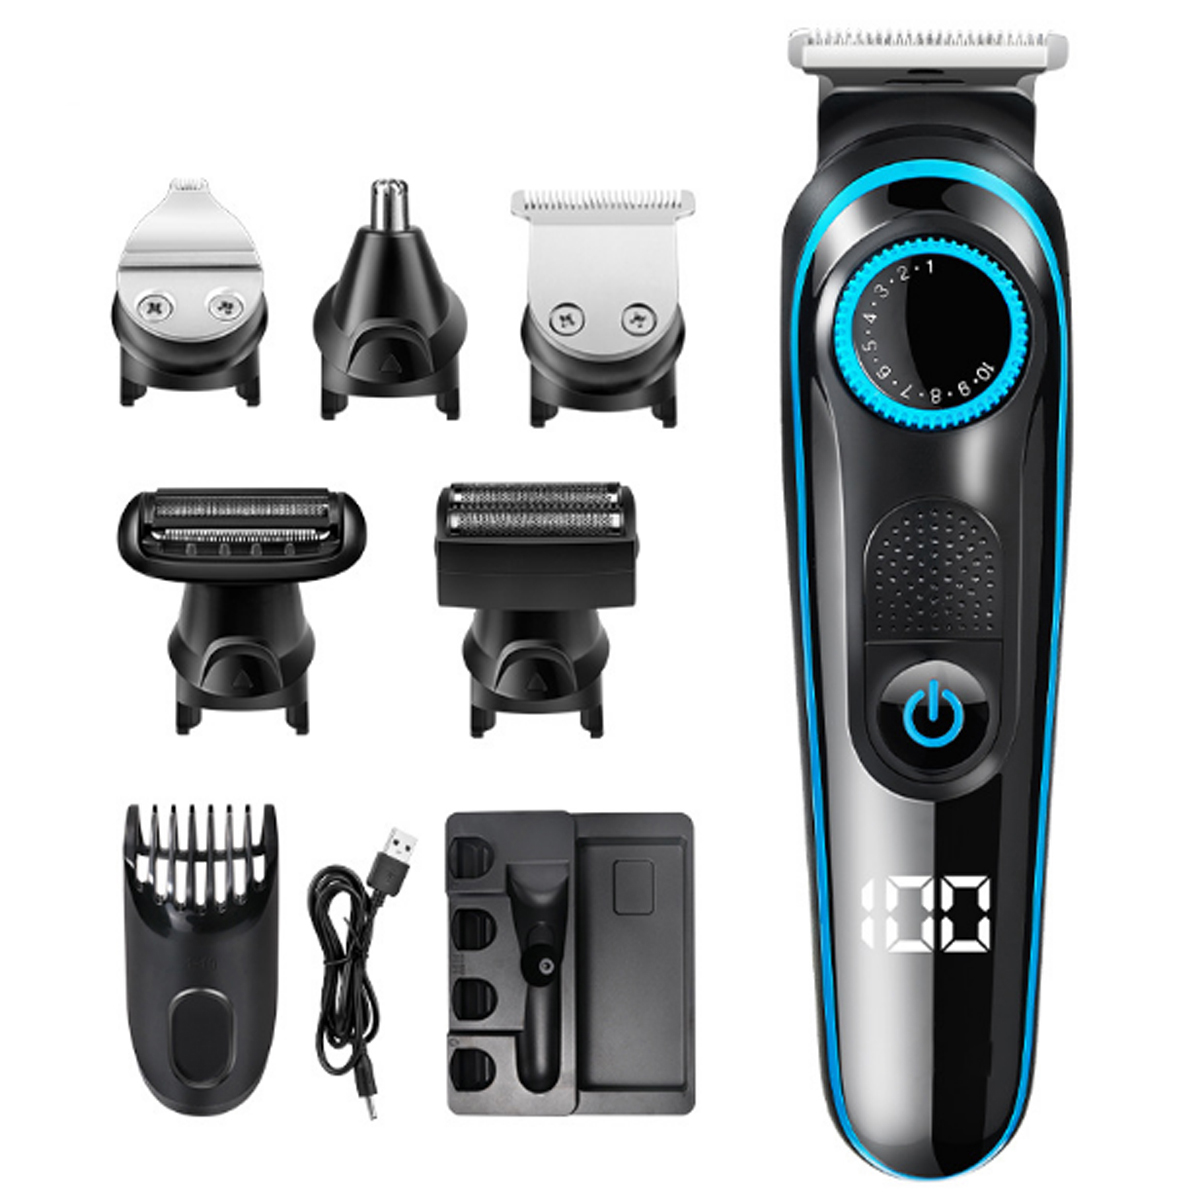 100-240V Rechargable Hair Clipper Multifunctional Hair Trimmer E